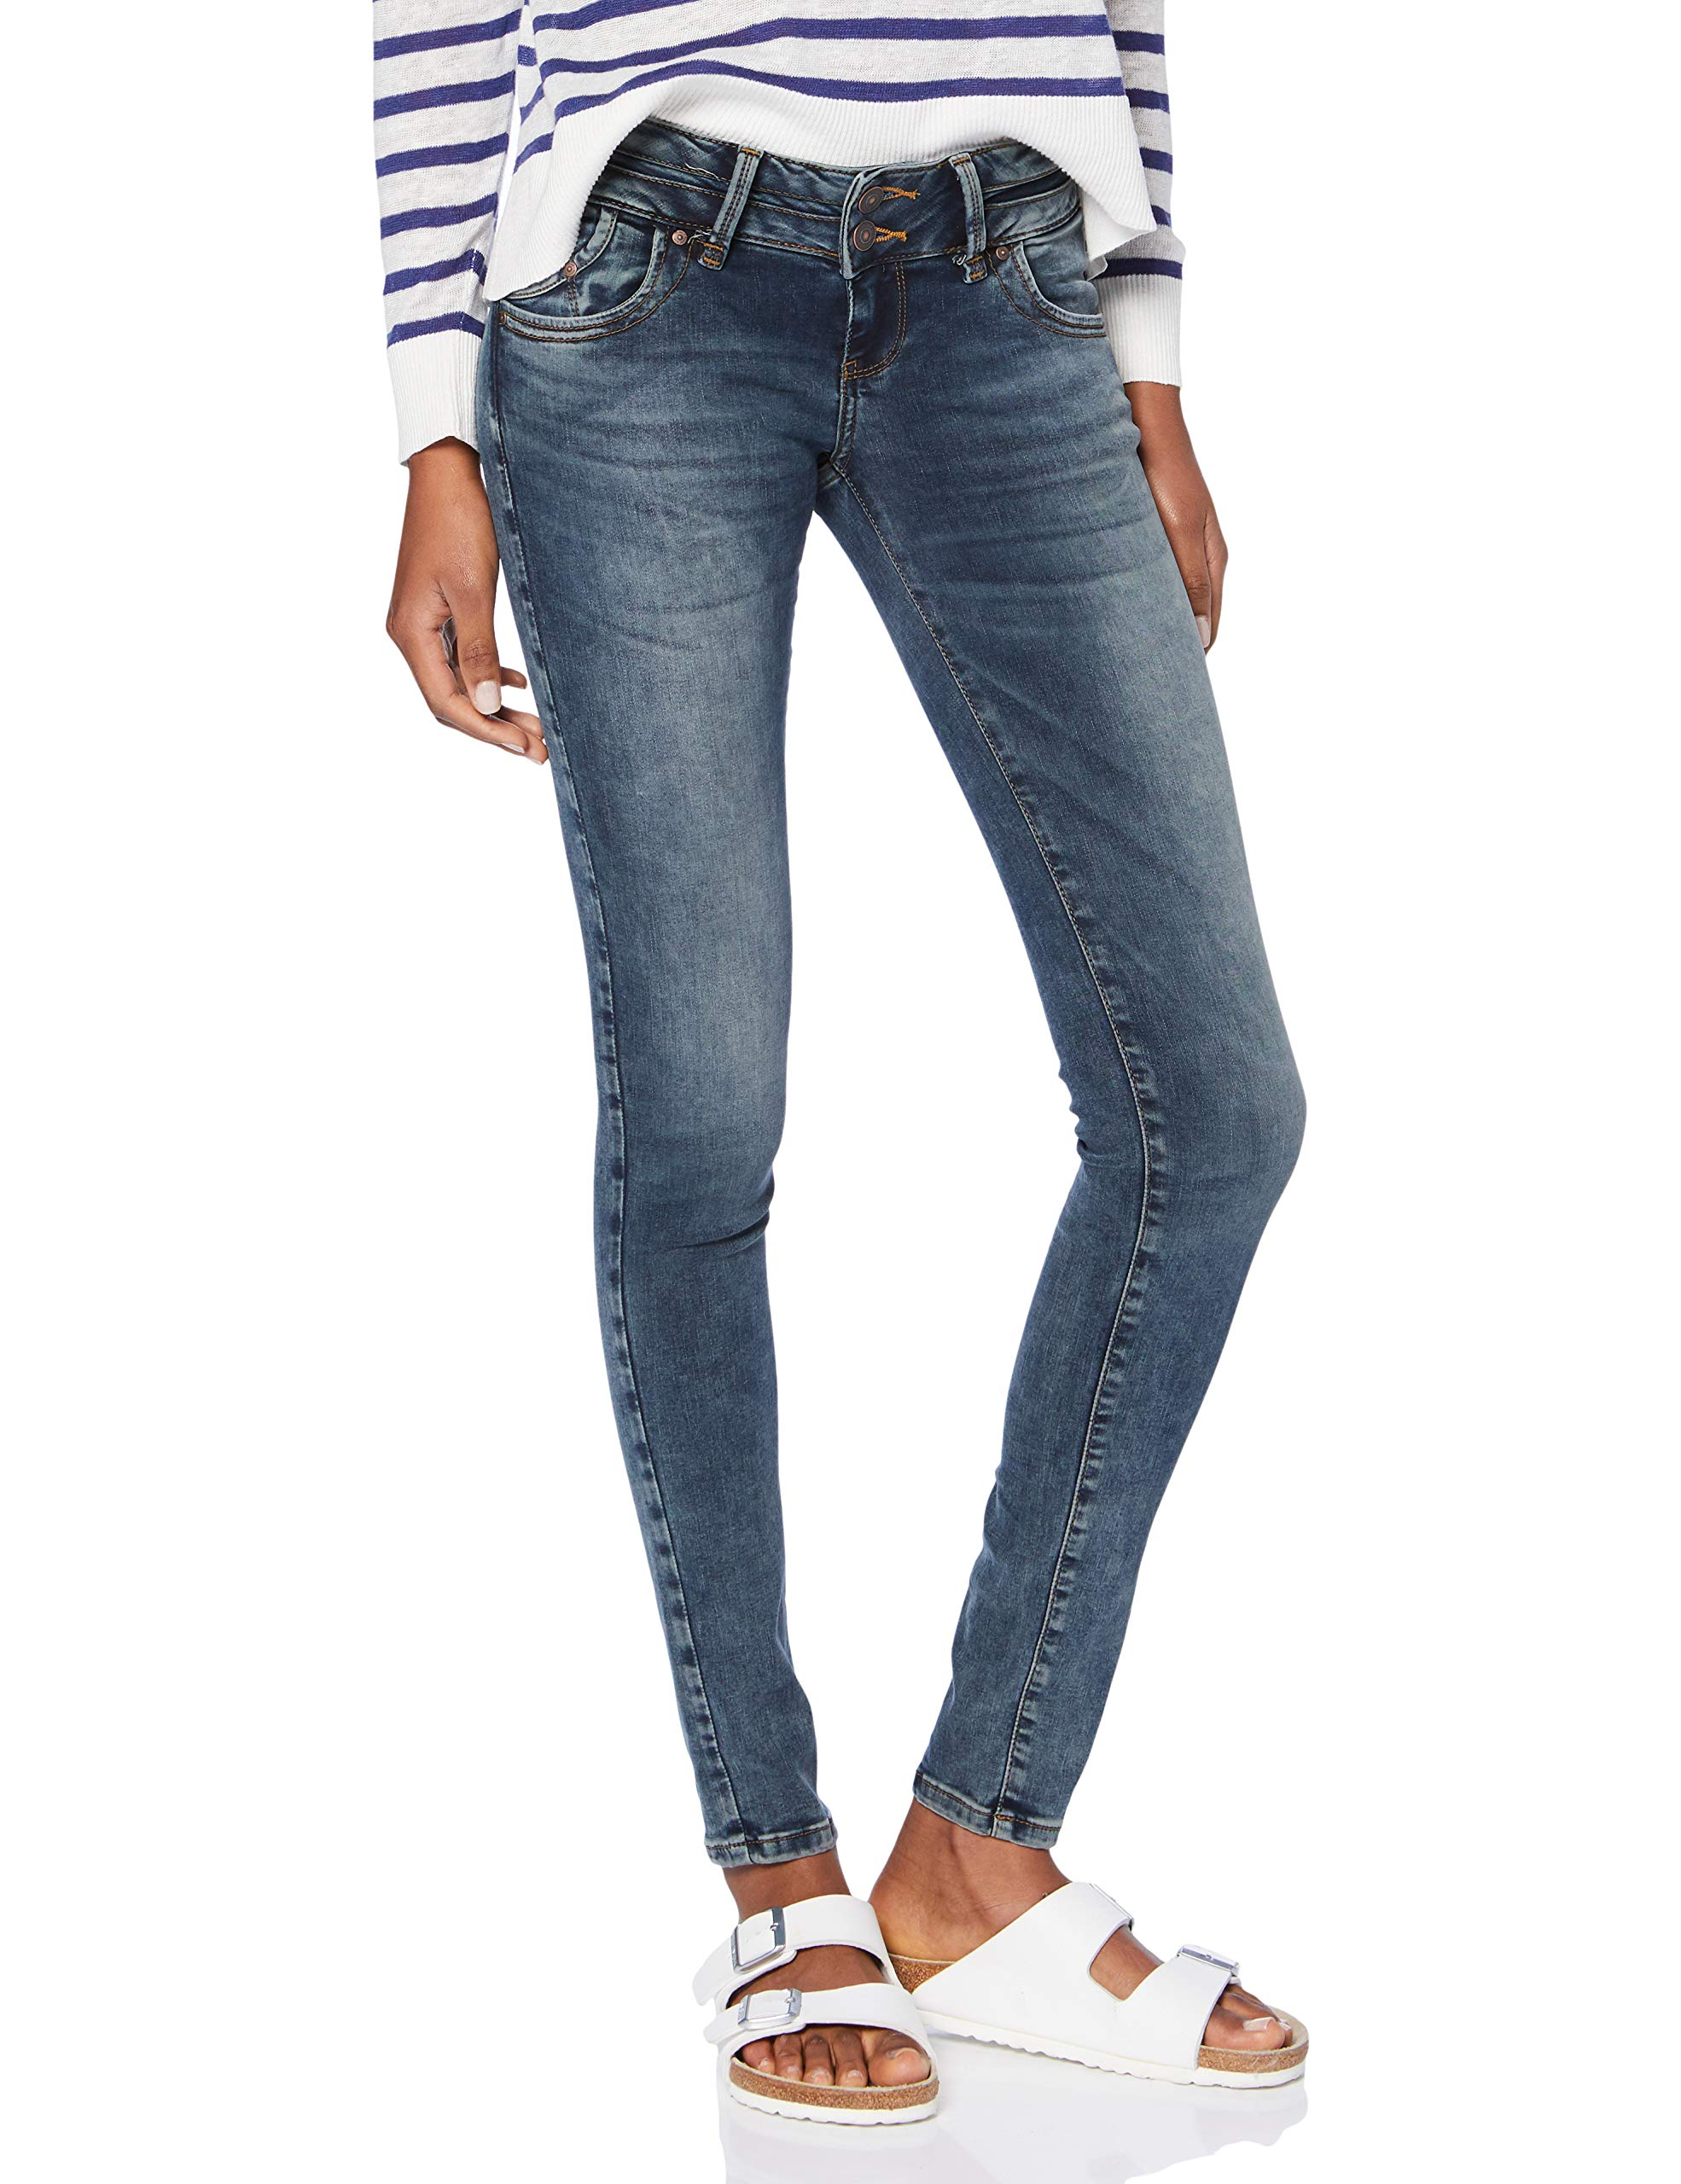 SkinnyBleunome 51895W30 Wash Jean 34Femme X Ltb l34taille Fabricant30 Julita Jeans 0Pnk8Ow